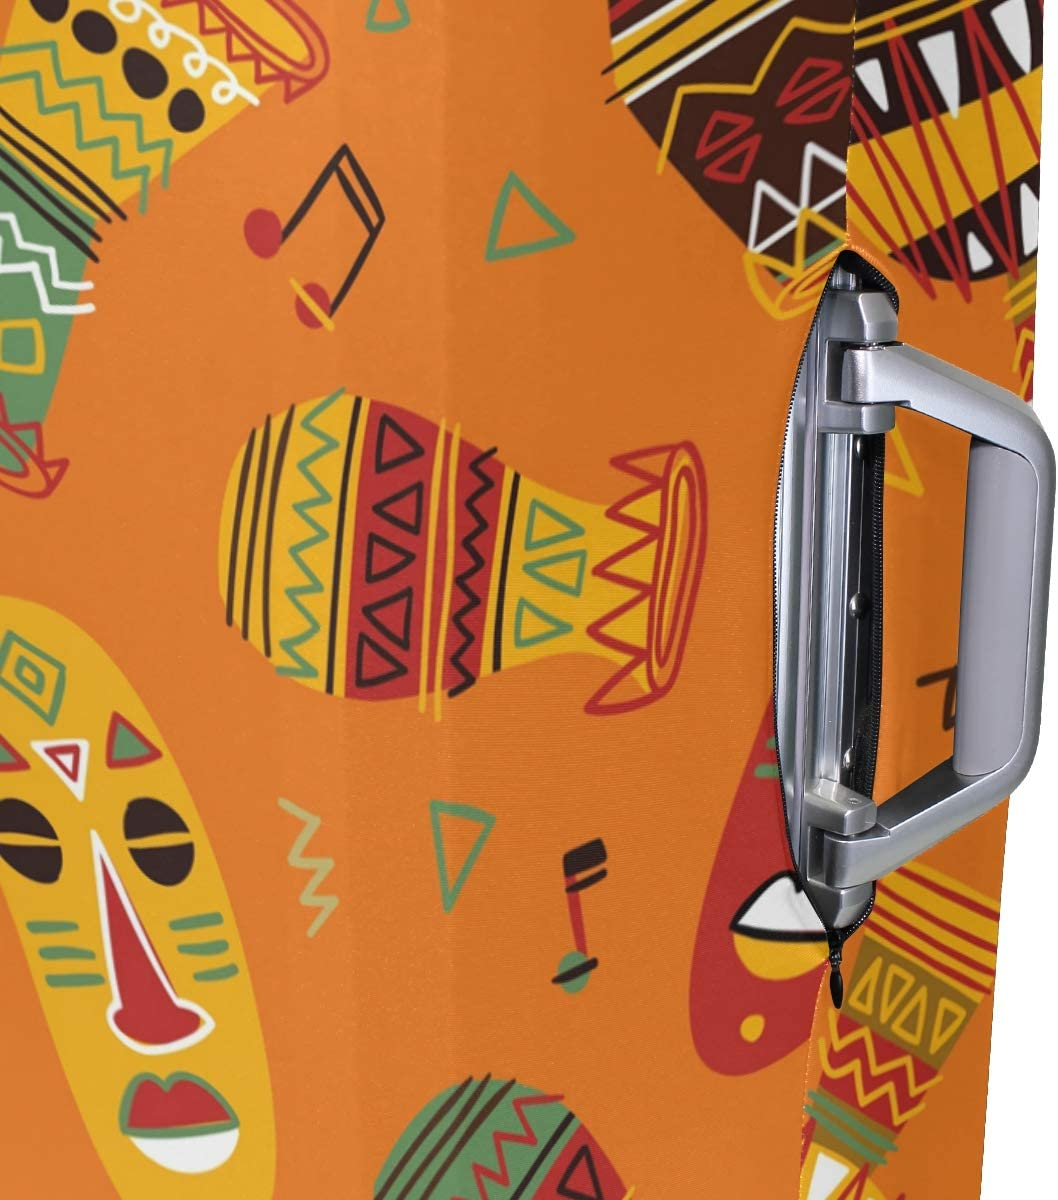 Blue Viper Colorful African Luggage Protective Cover Suitcase Protector Fits 22-24 Inch Luggage